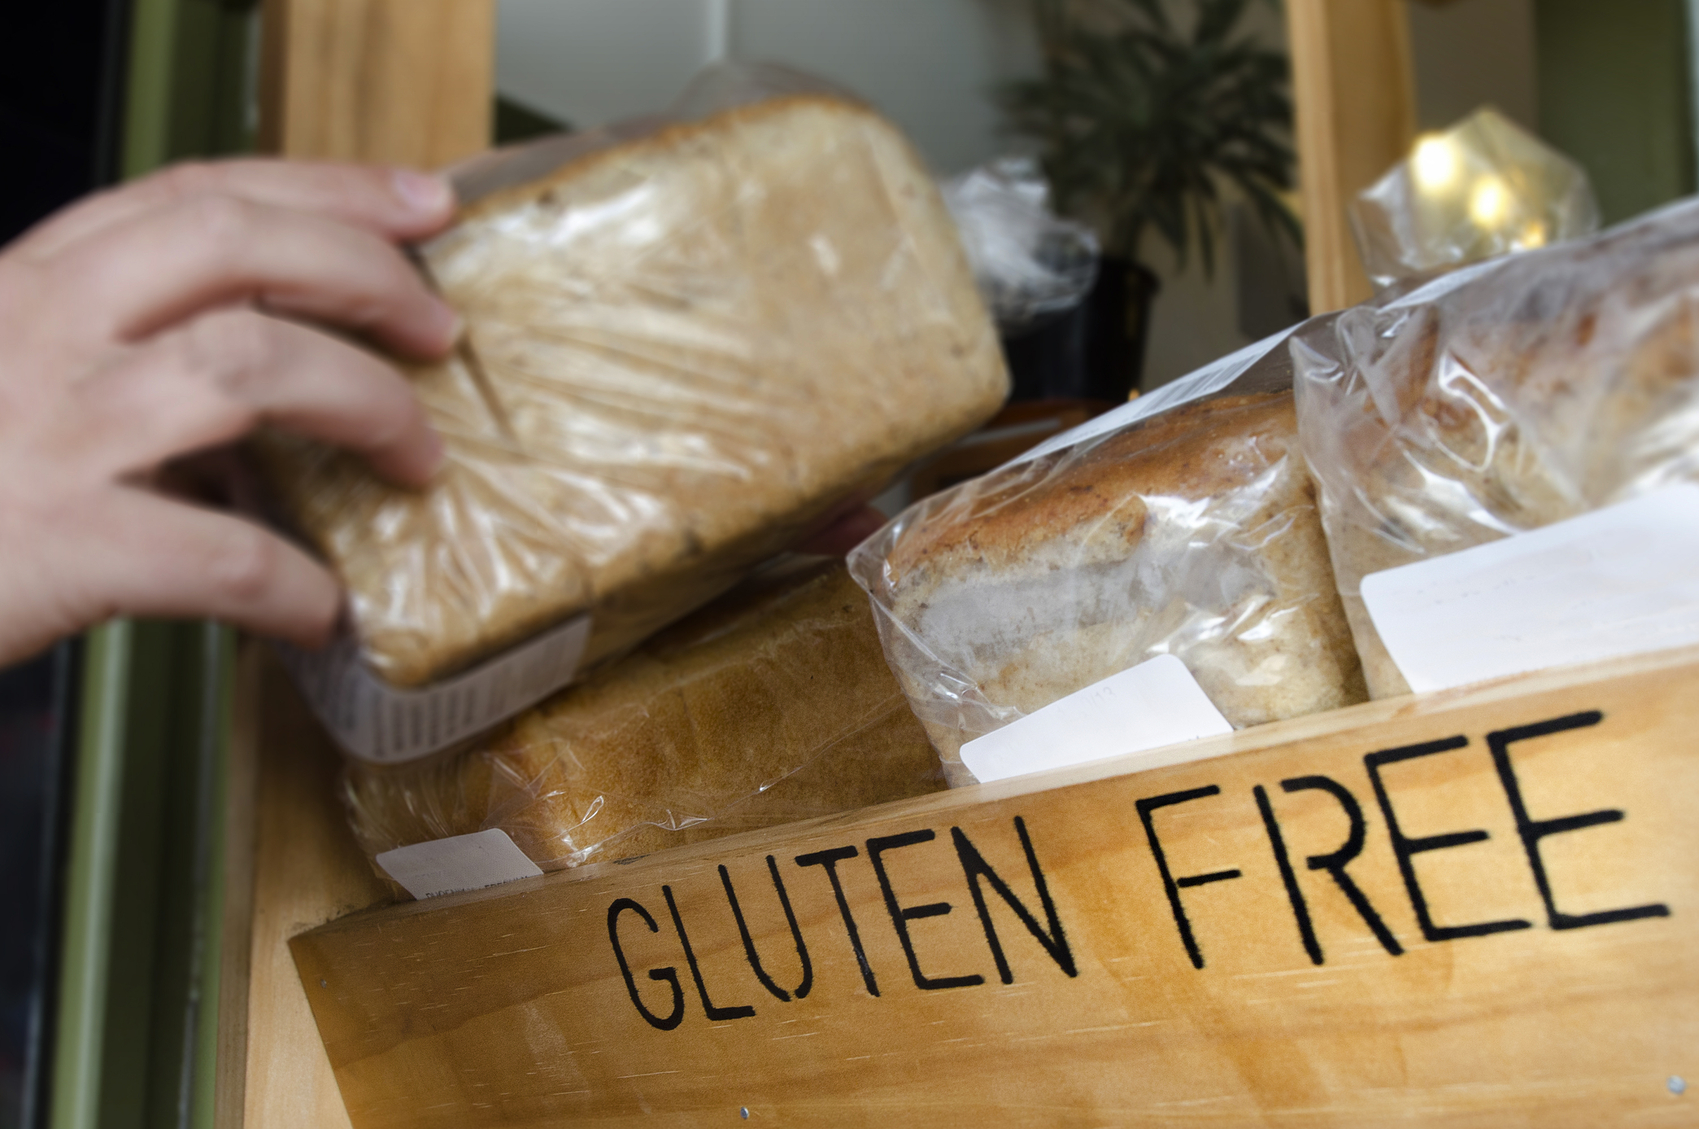 Coop supermarkets now sell about 200 different gluten-free products (photo: iStock)